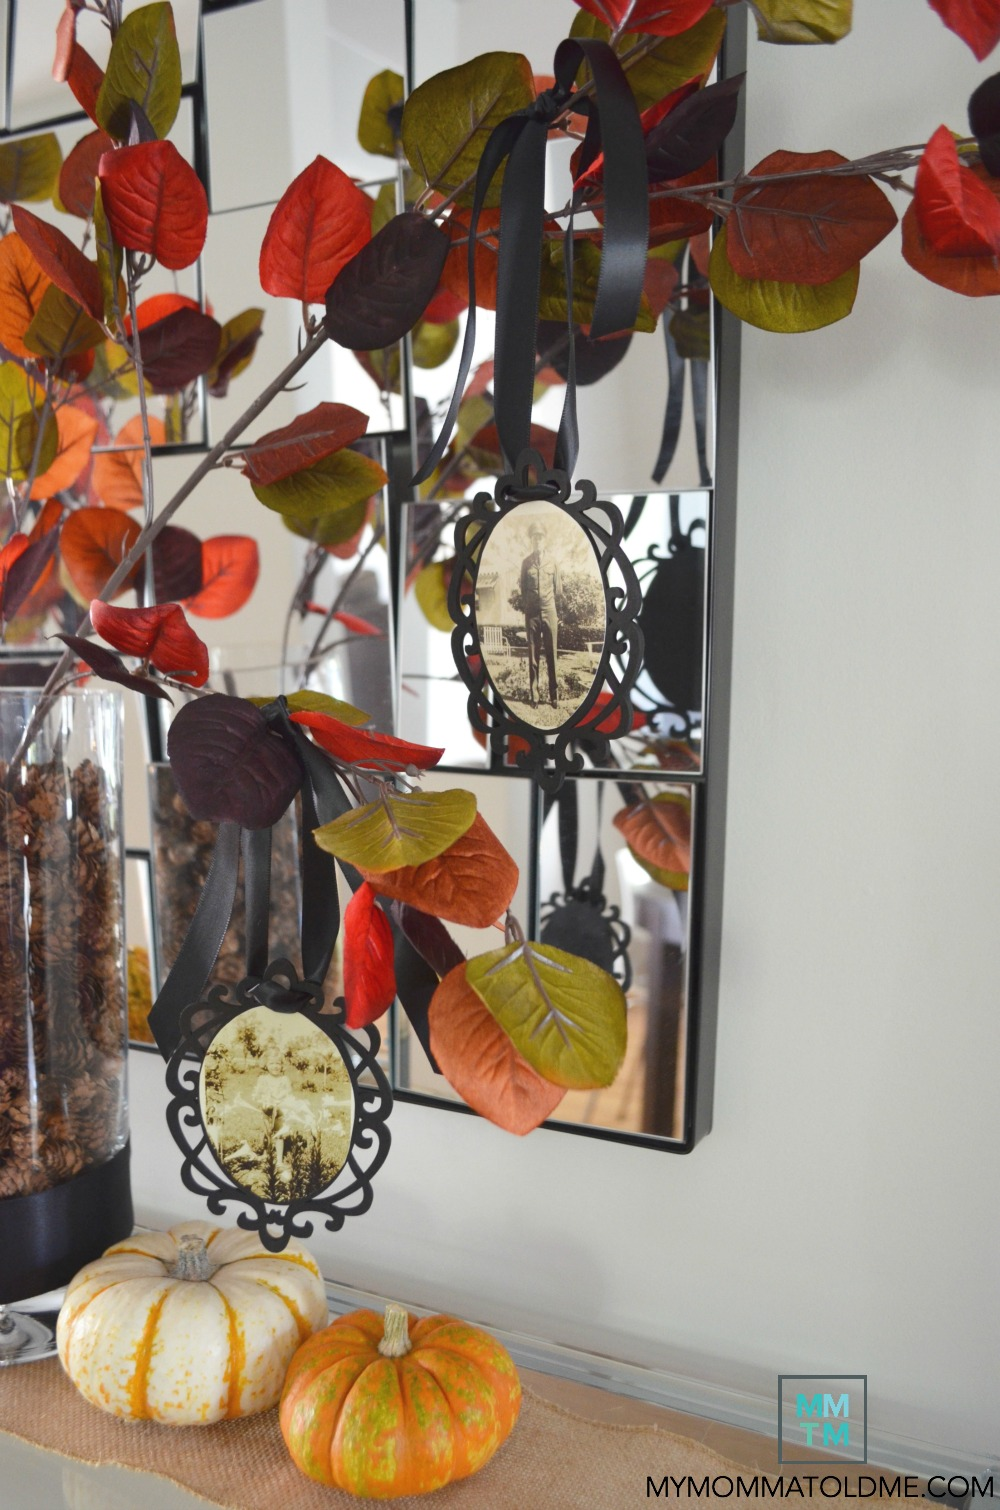 diy fall decor ideas thankful tree family memory tree dia de los muertos day of the dead decor idea